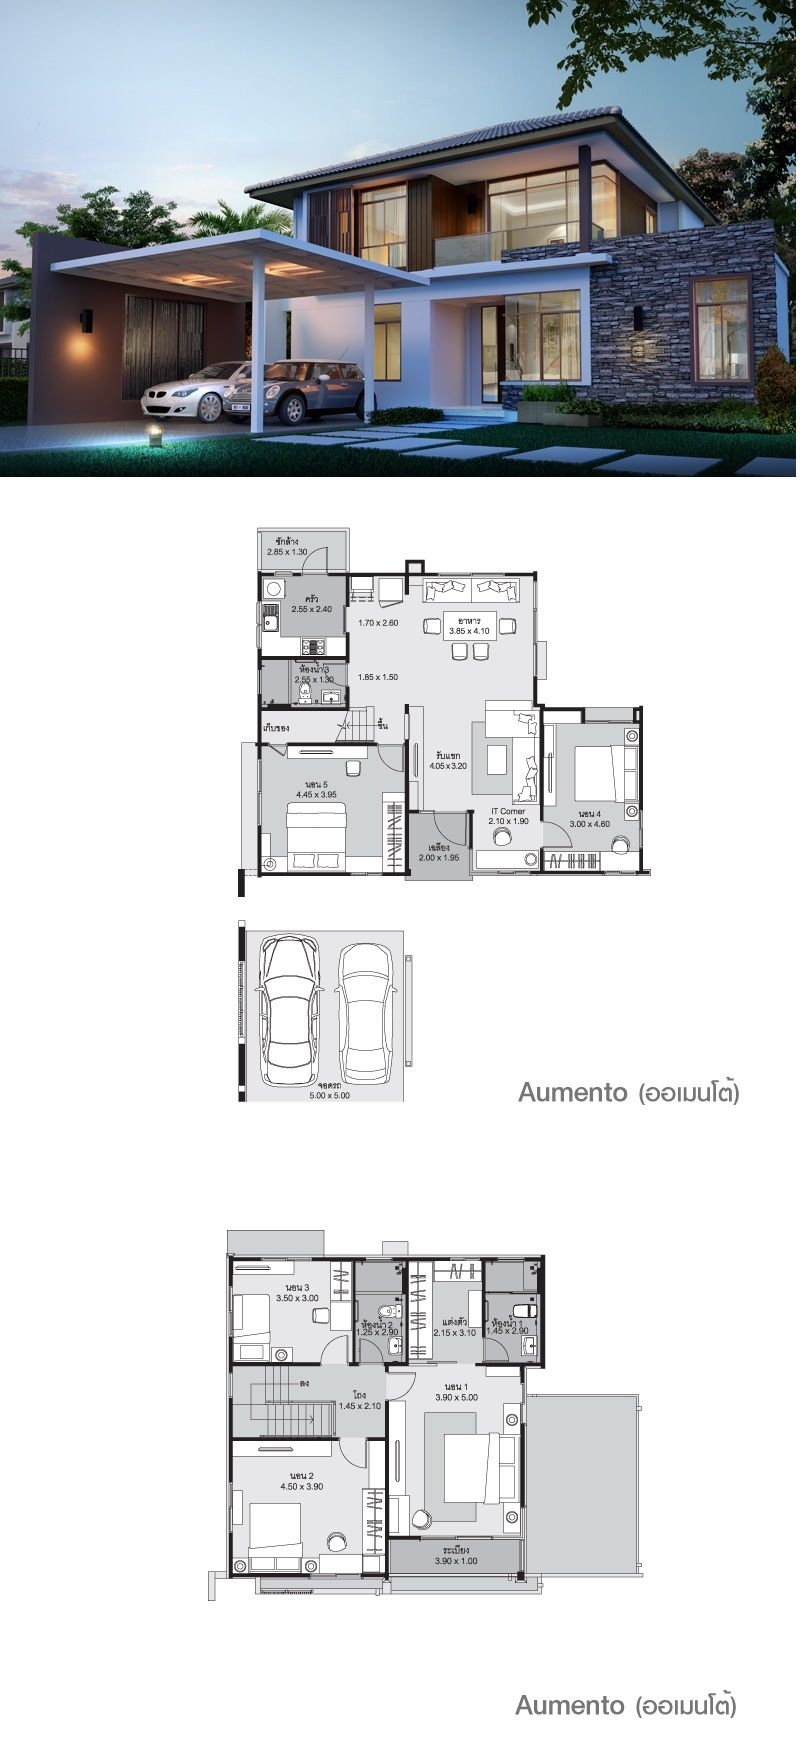 aumento home layout pinterest house architecture and villas aumento